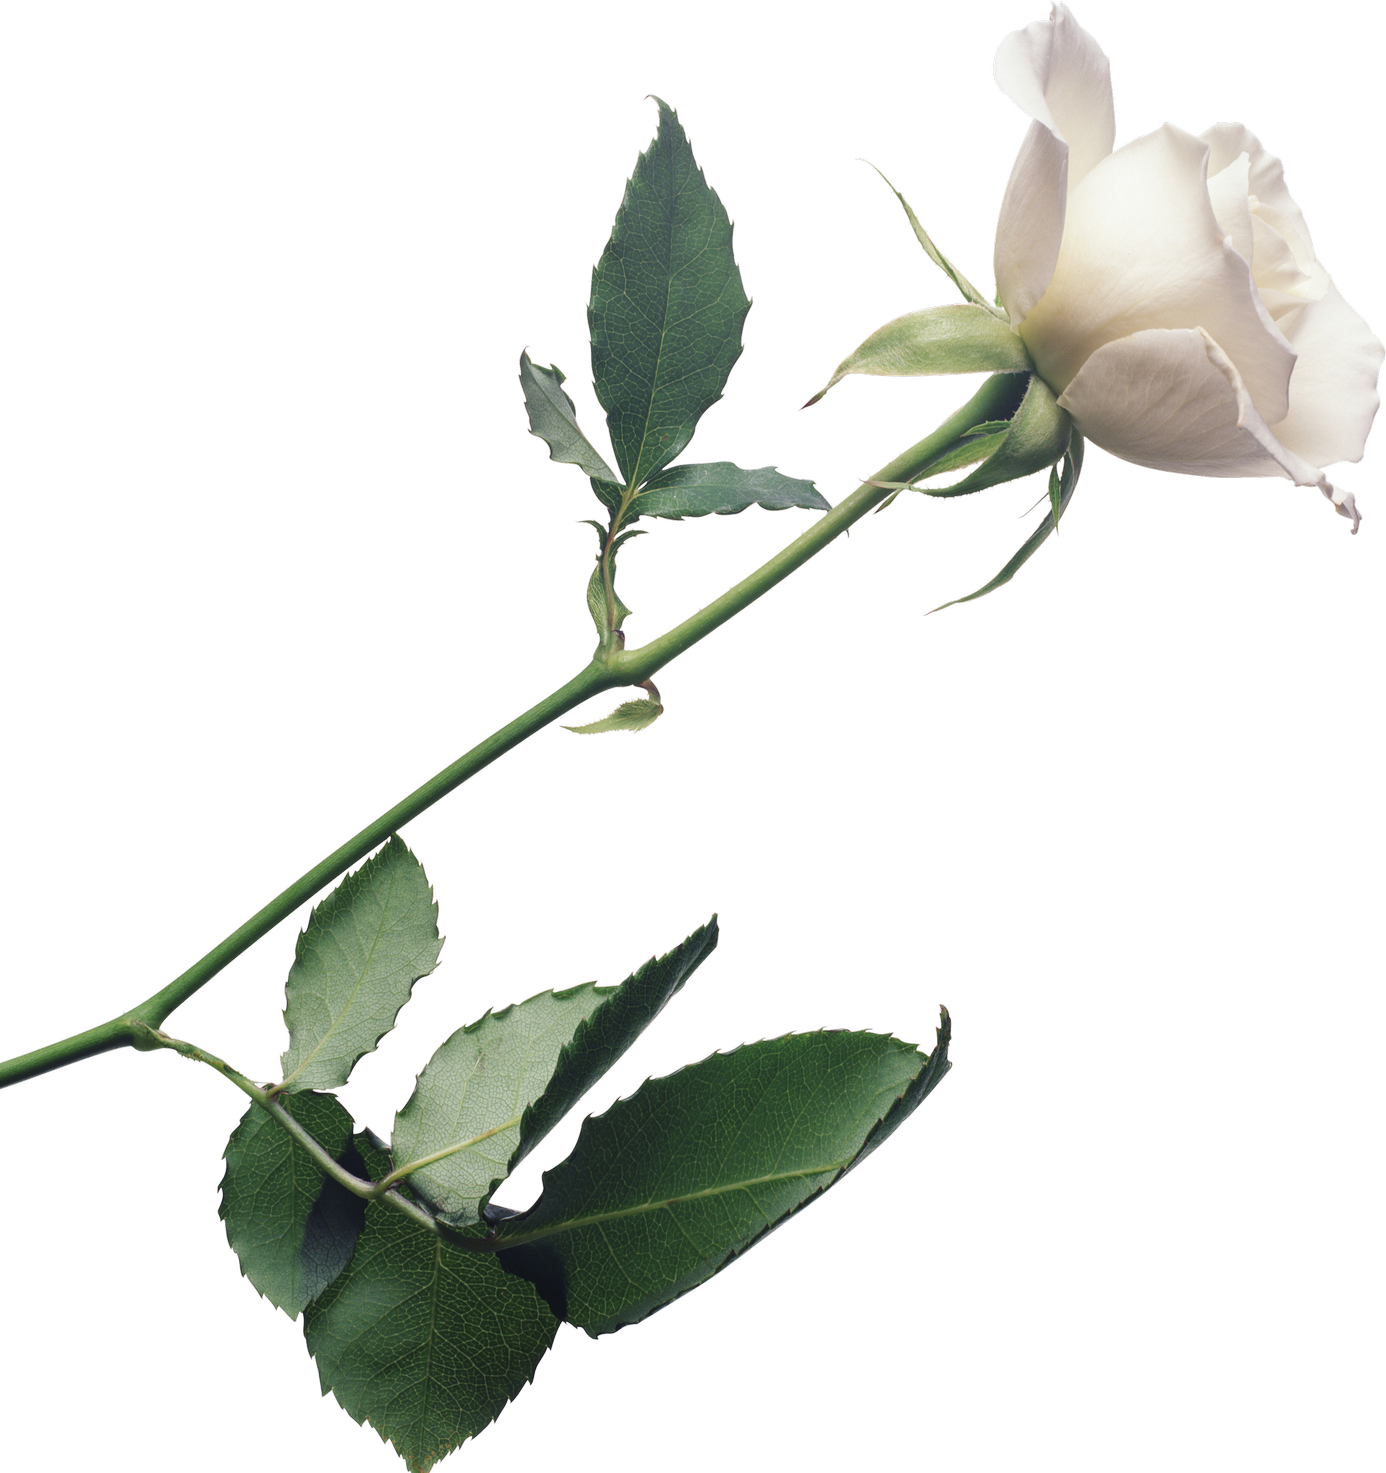 White Roses PNG Image - PurePNG   Free transparent CC0 PNG Image Library